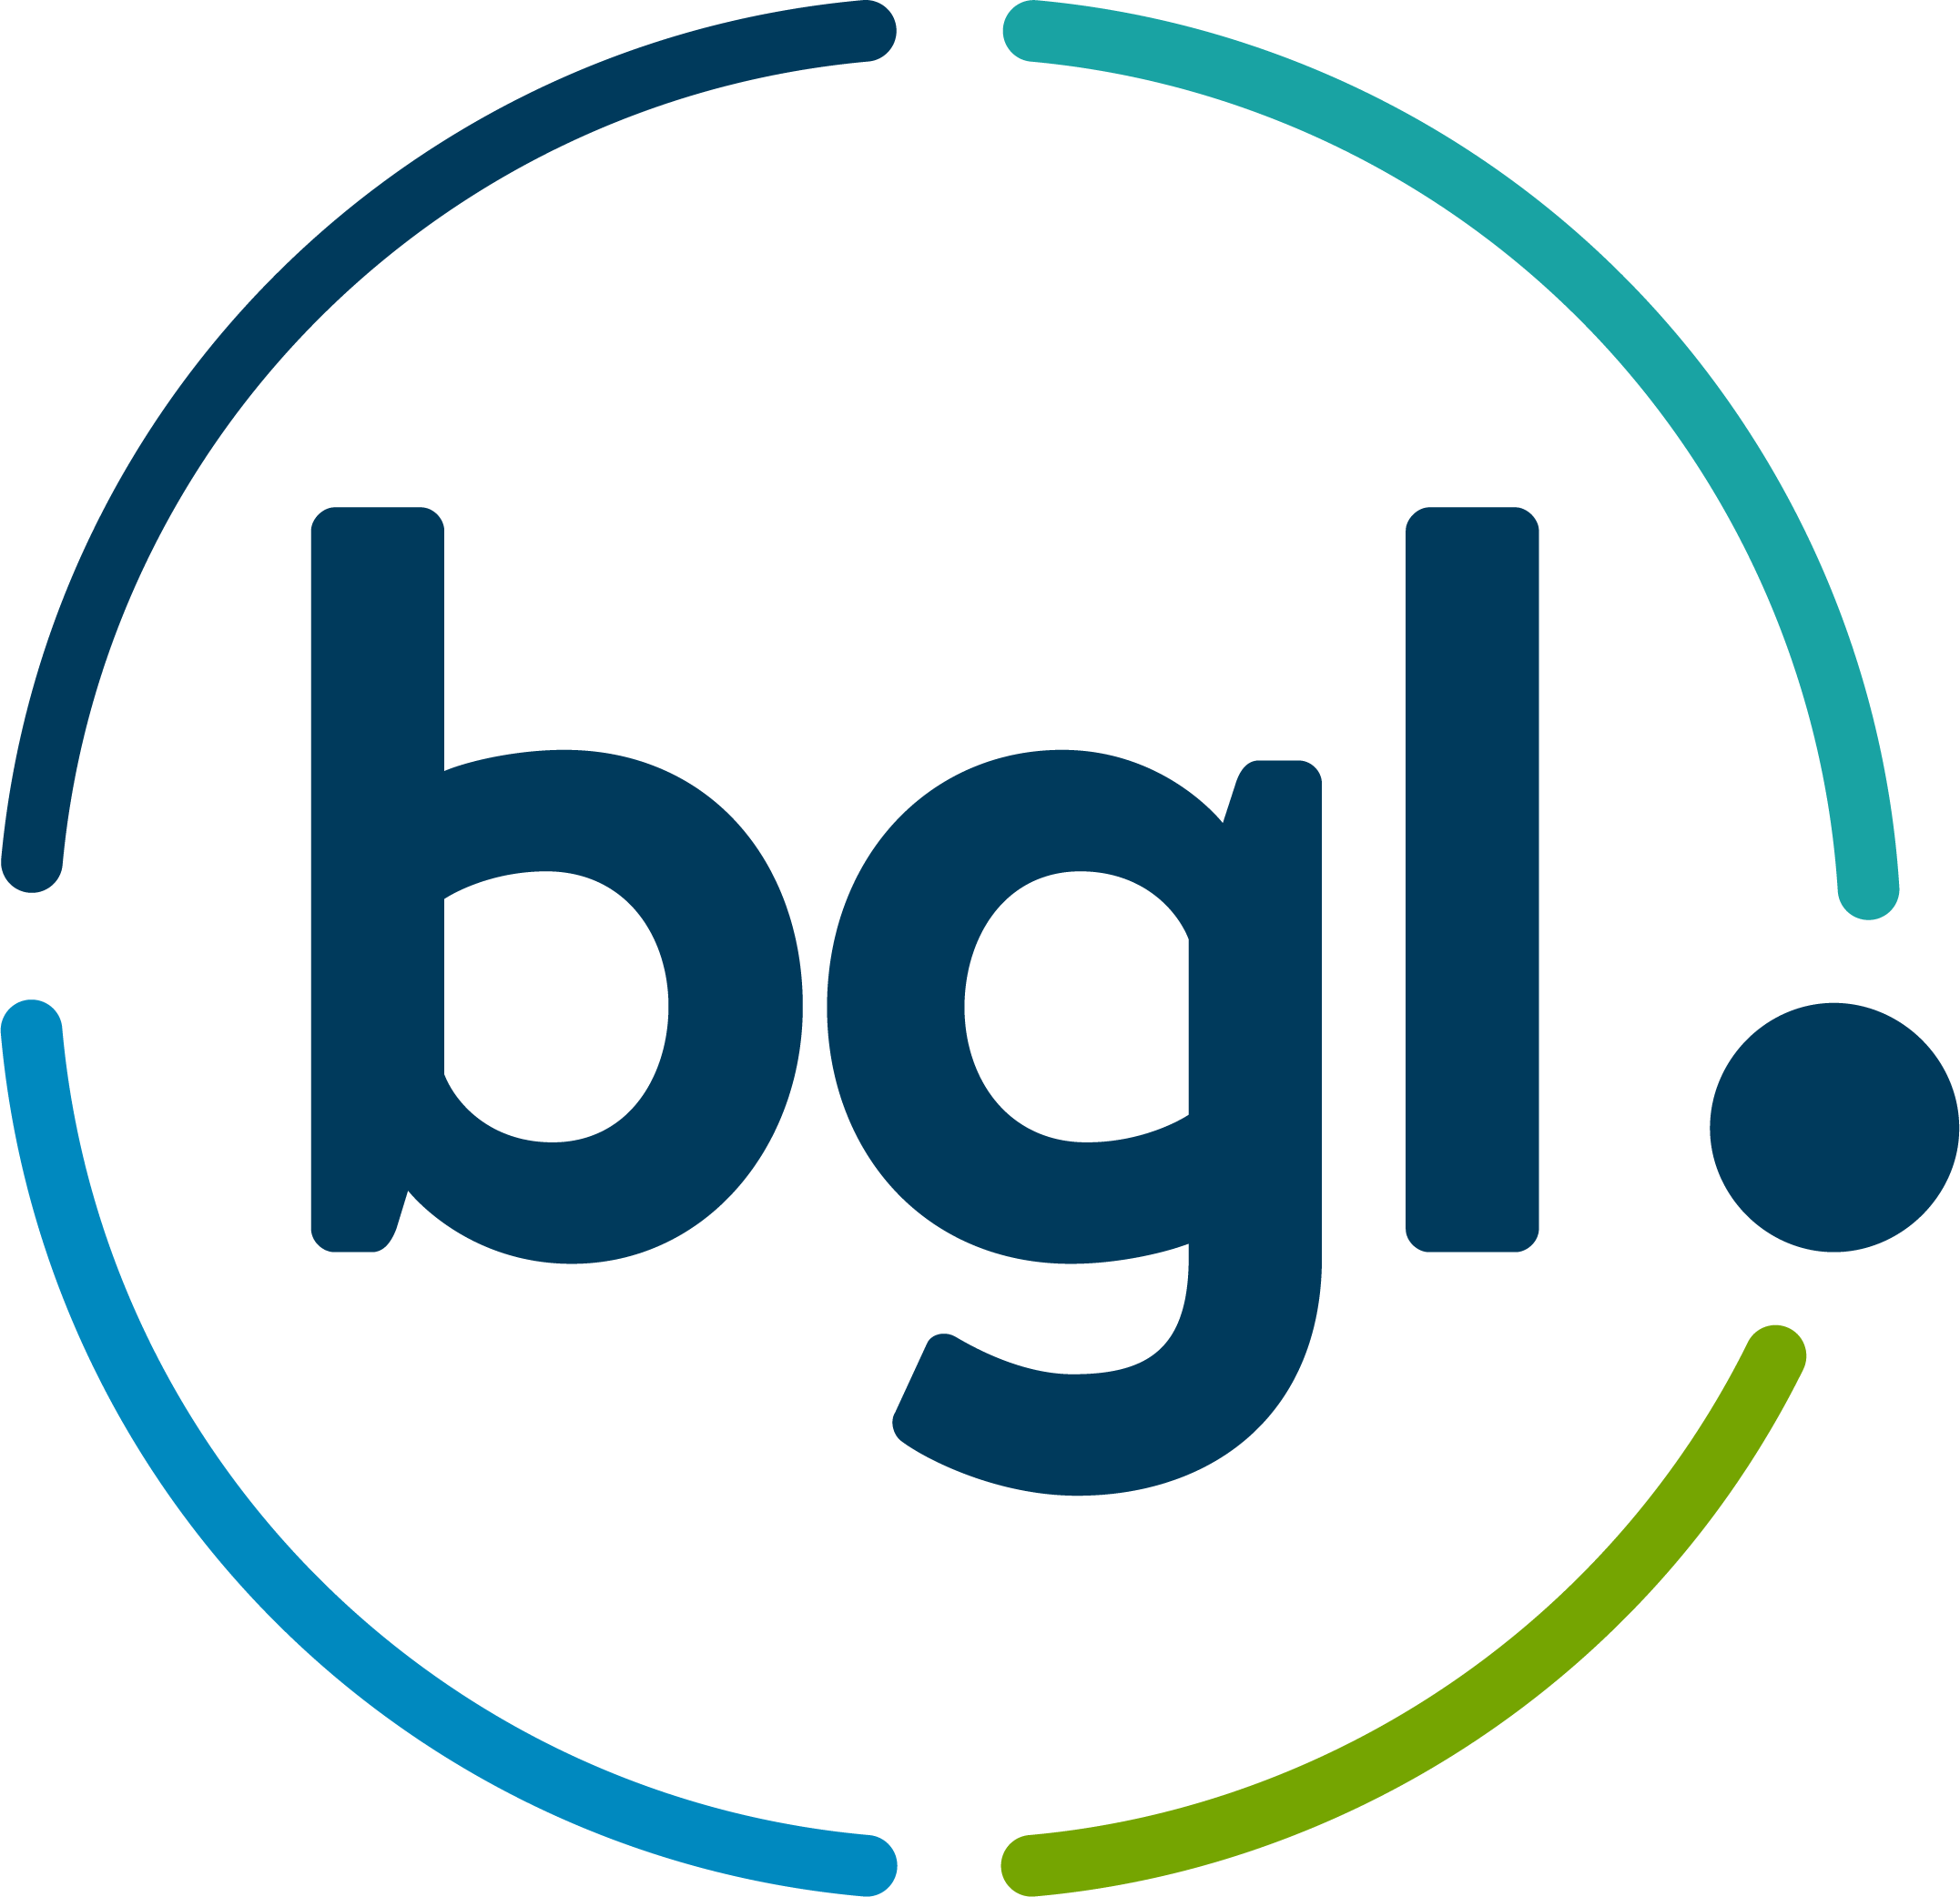 BGL Corporate Solutions